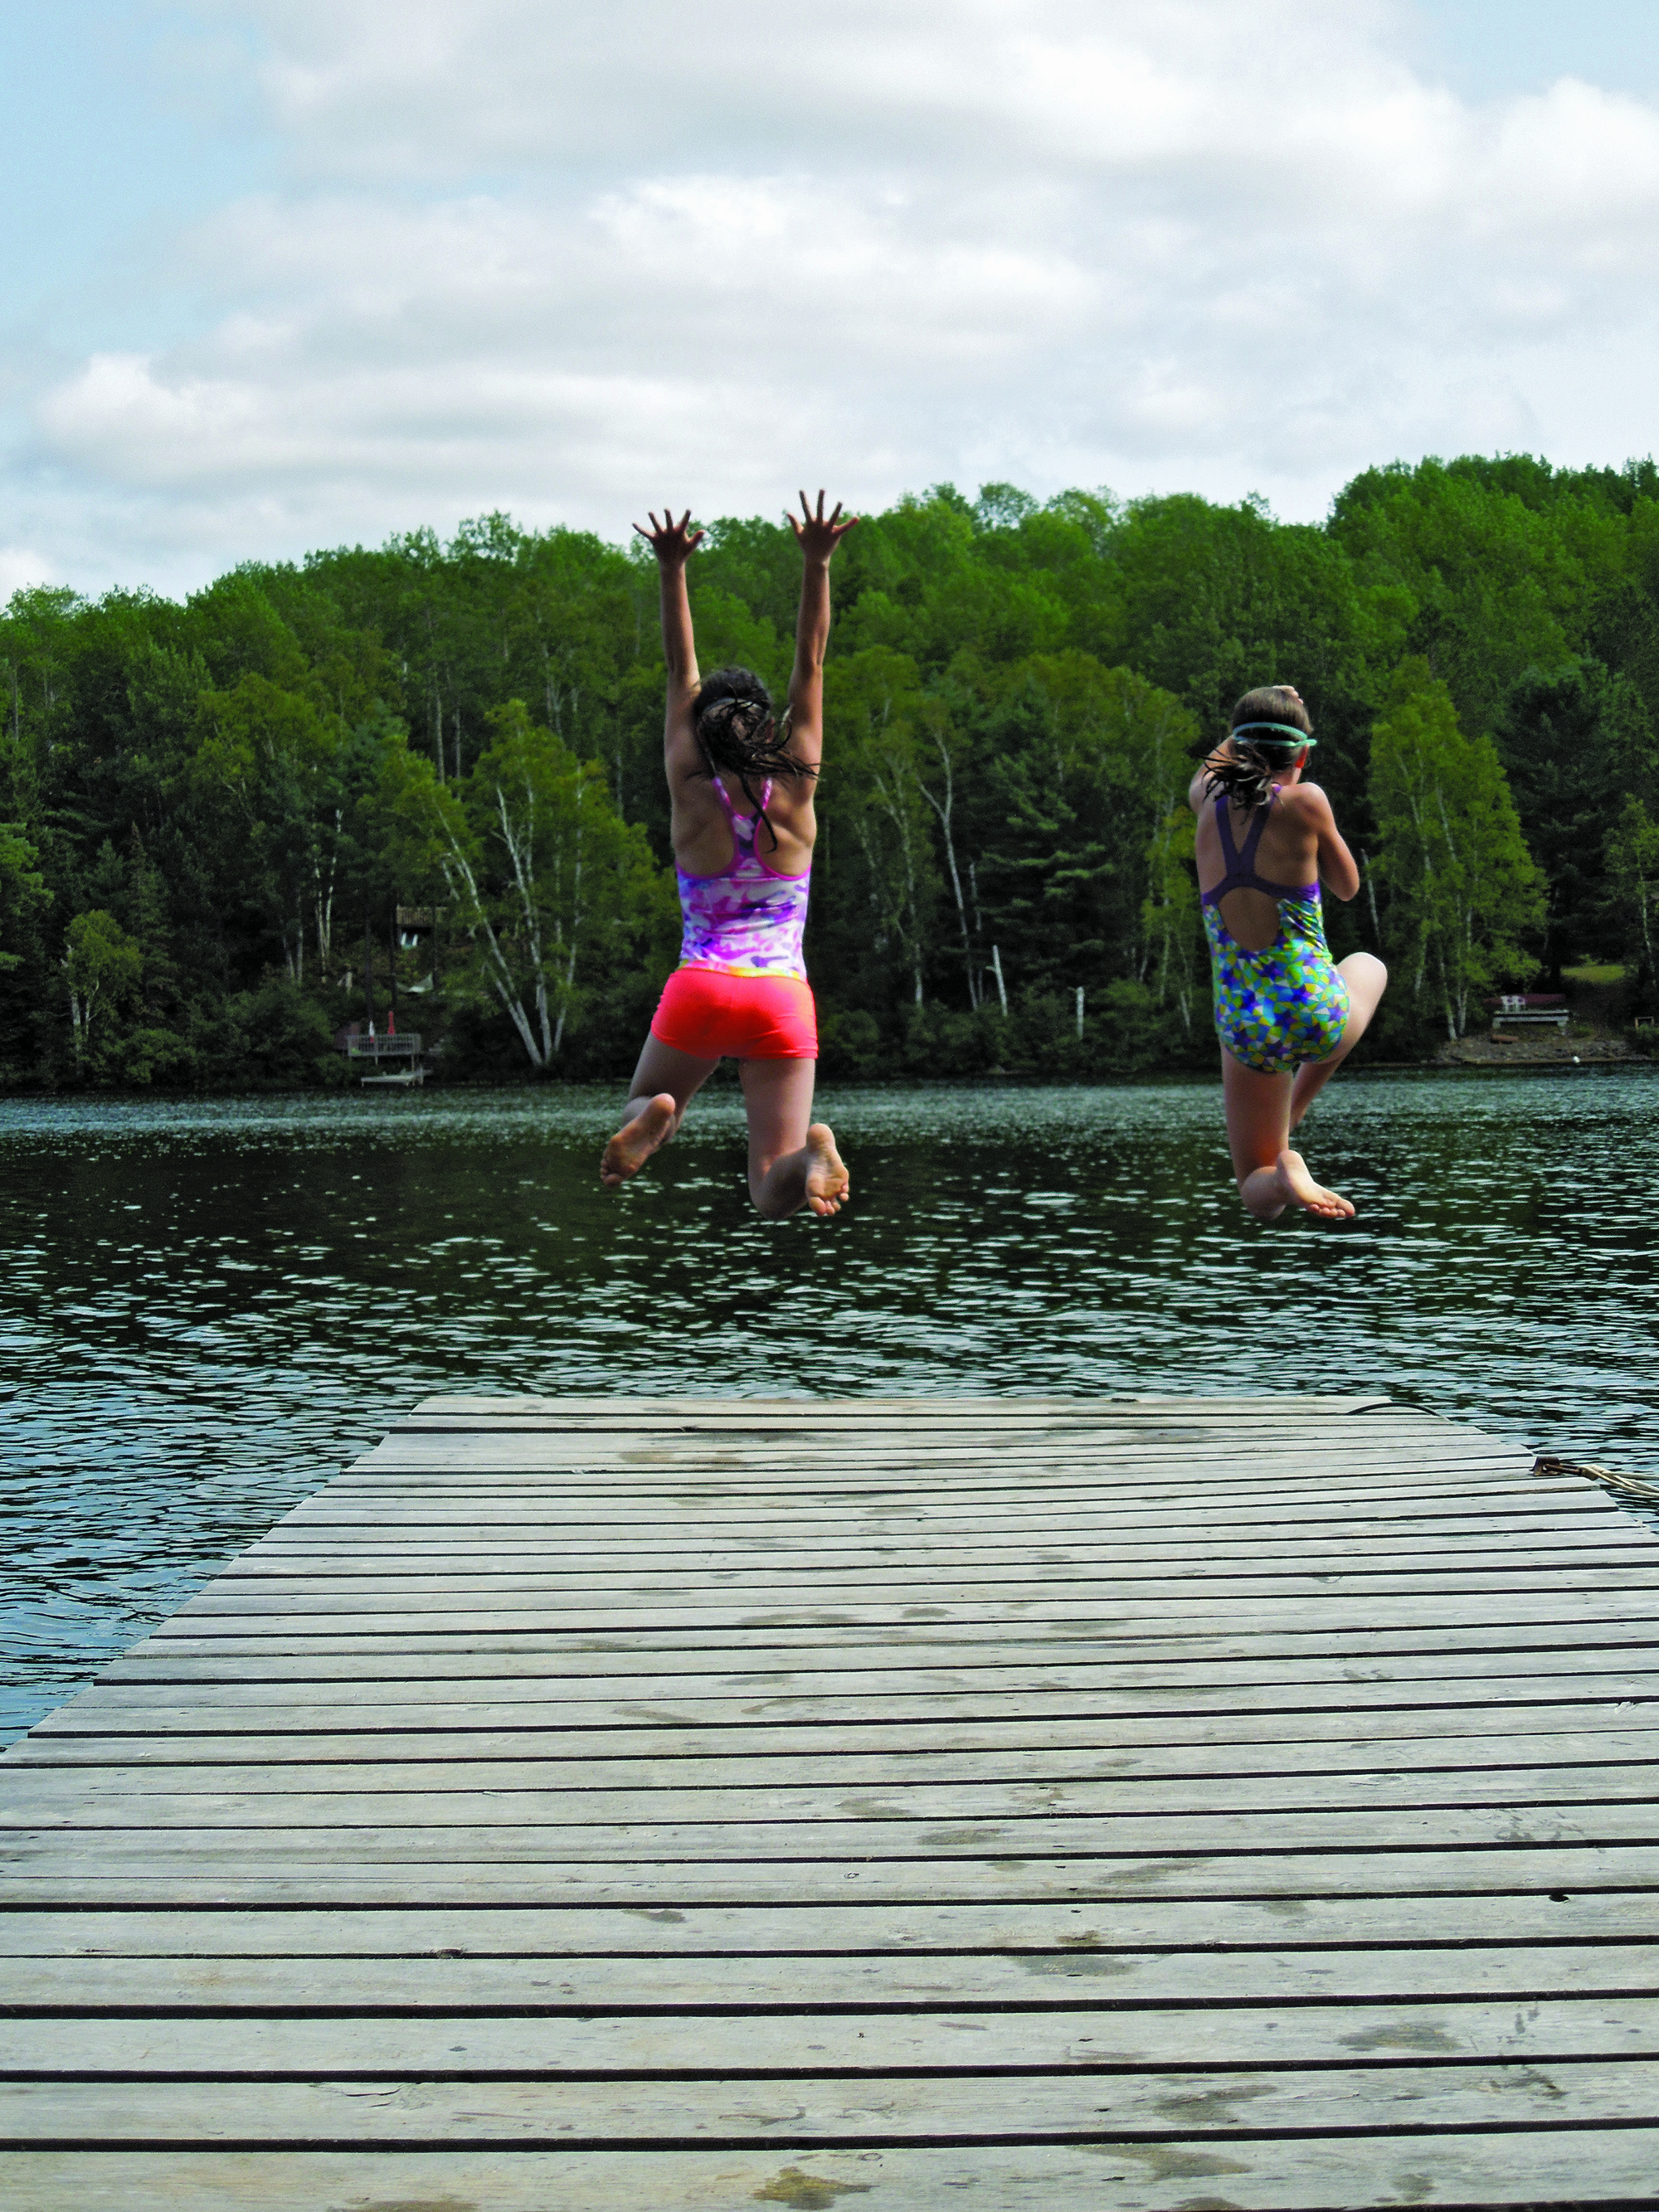 2ND PLACE  – SUMMER SISTERS  Photographer: Heather Cowley  Photo Description: Sisters Sylvie and Kaelan were caught in this photo leaping off the dock into Lake St. Peter, Ontario.